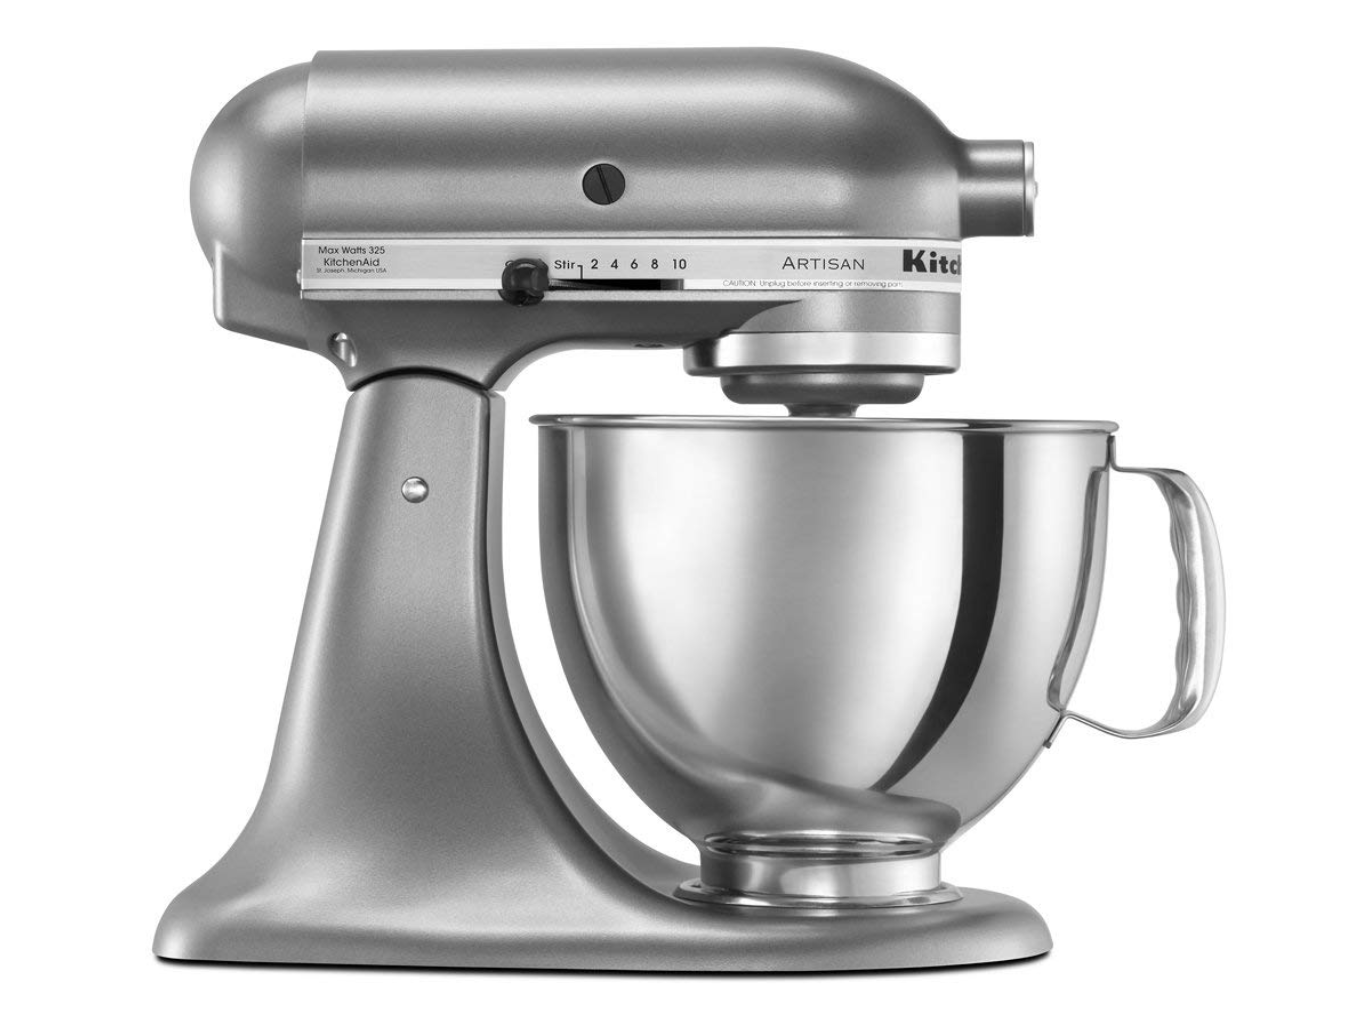 Fabulous Kitchenaid Stand Mixers Are Majorly Discounted On Amazon Best Image Libraries Counlowcountryjoecom